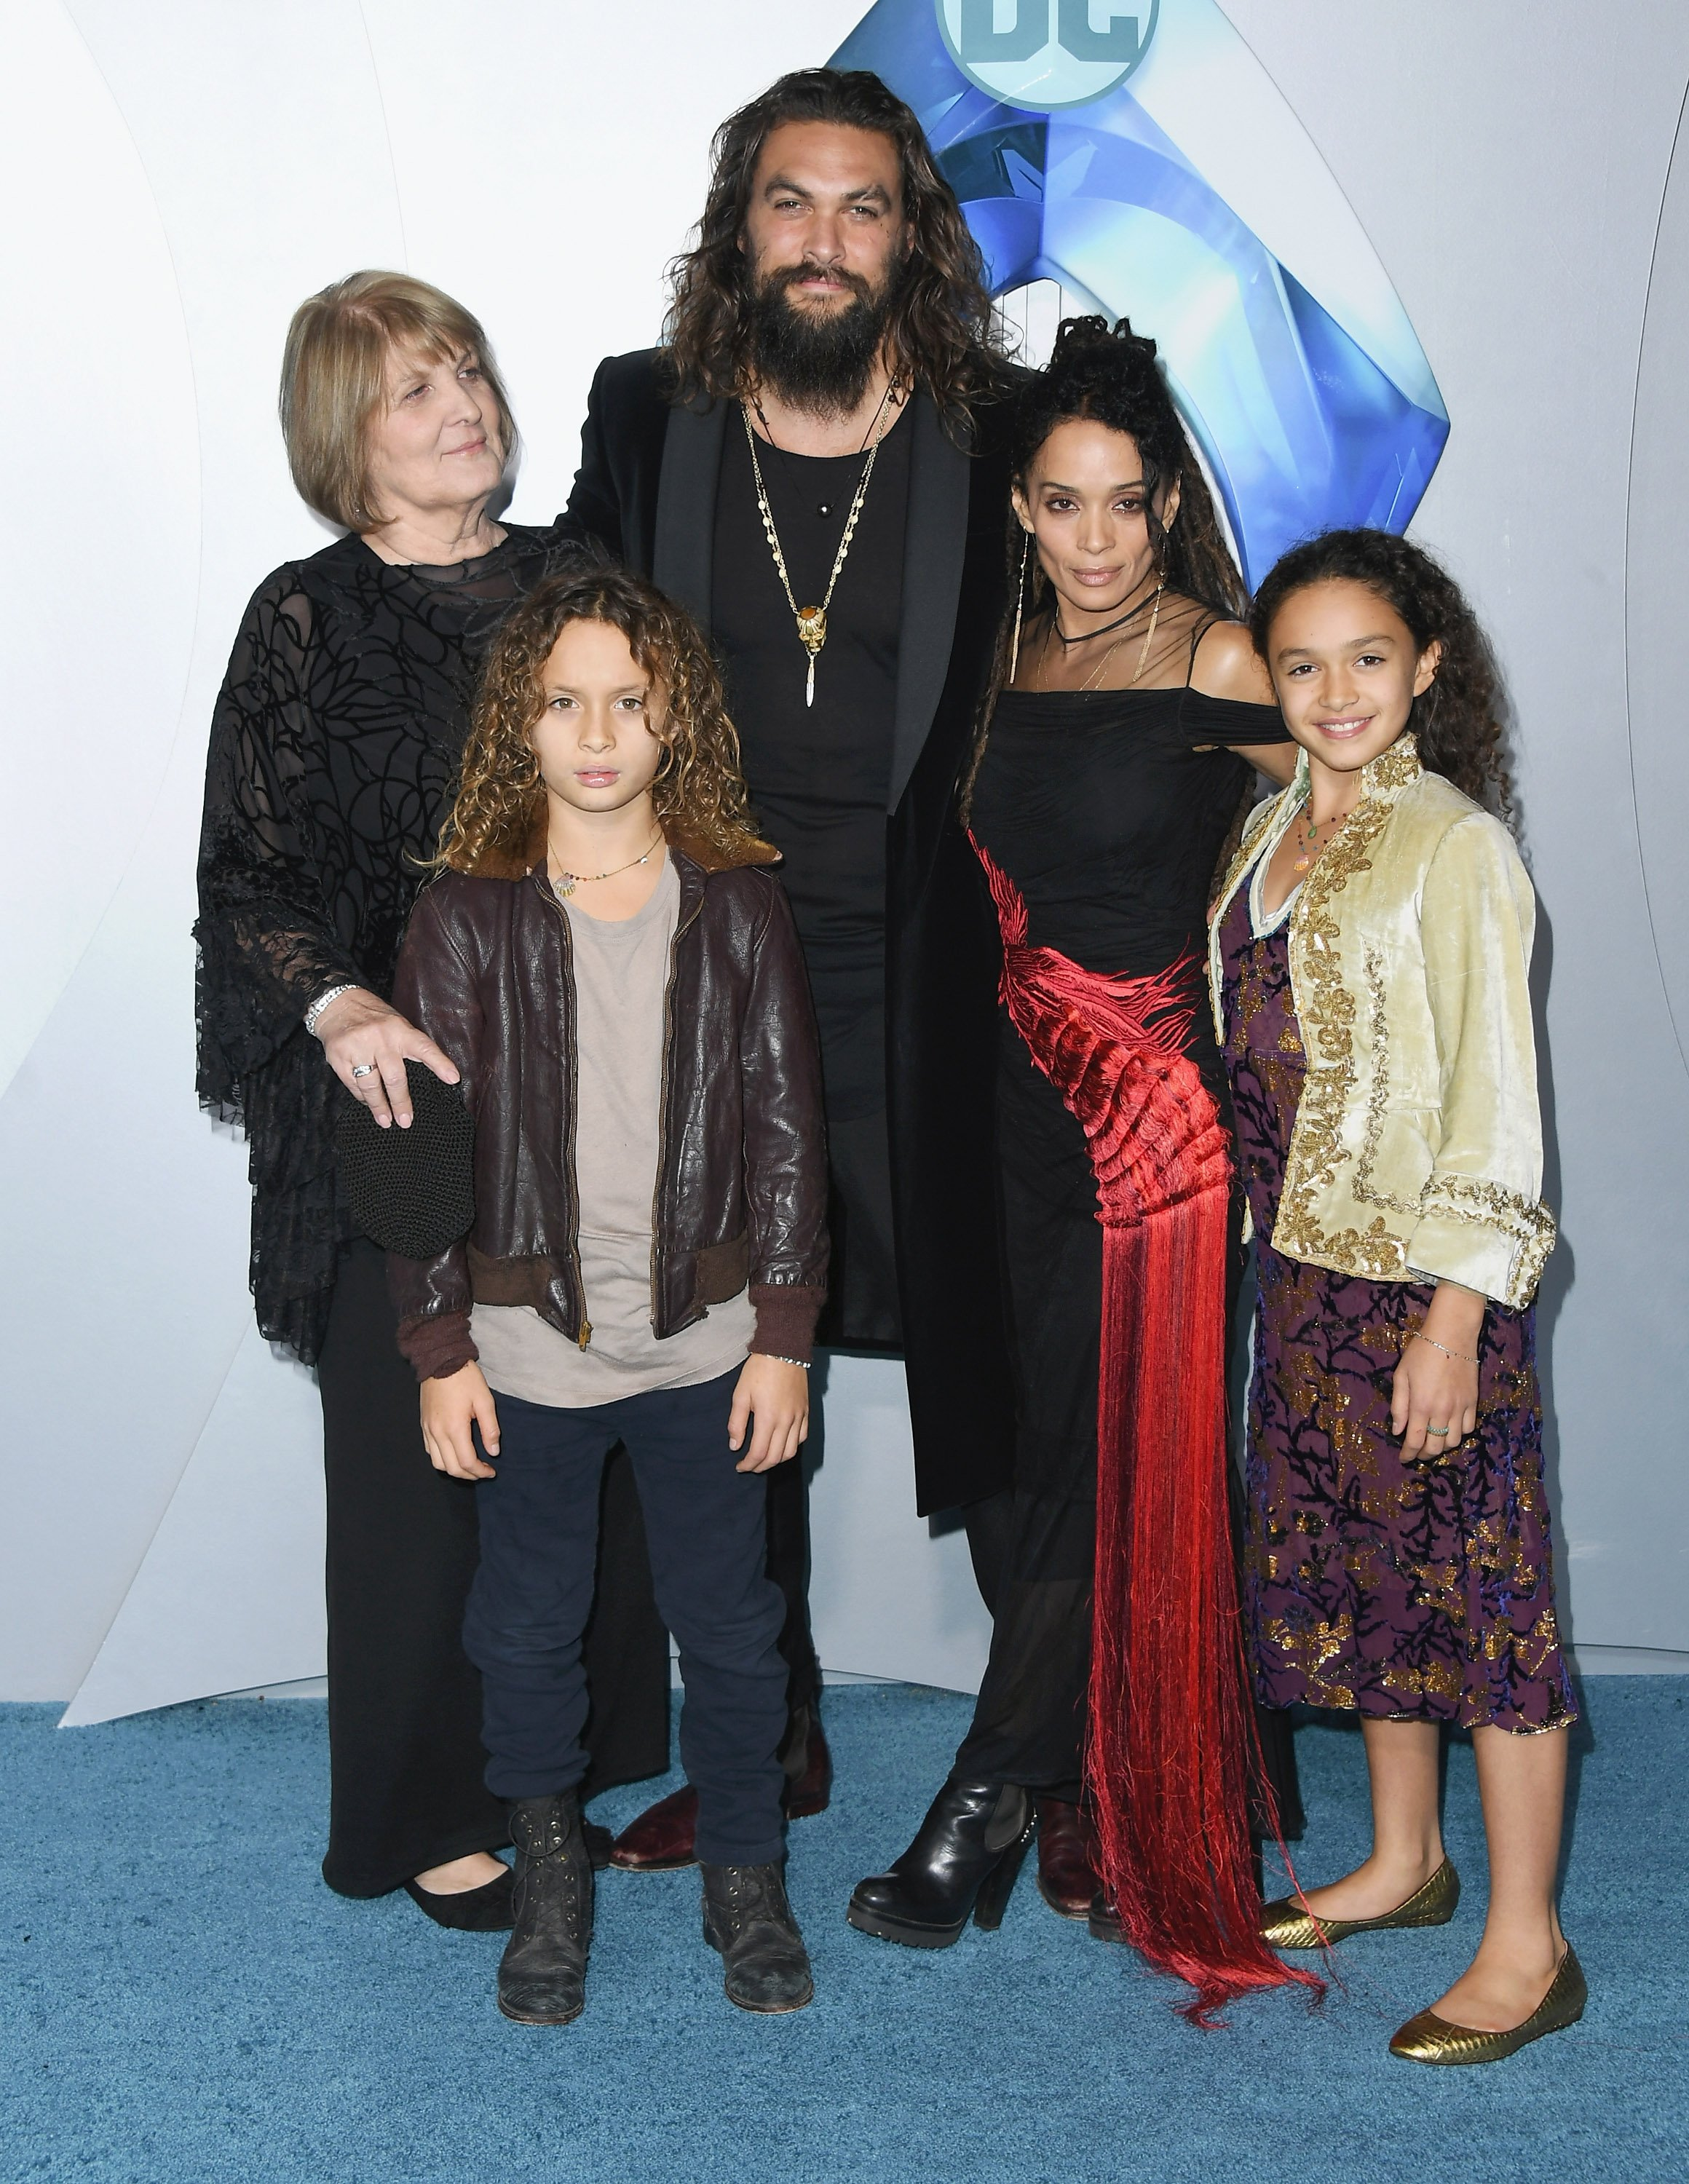 """Jason Momoa, his mother Coni Momoa, Lisa Bonet & their kids, Lola and Nakoa-Wolf at the premiere of """"Aquaman"""" in Hollywood, California on Dec. 12, 2018. 